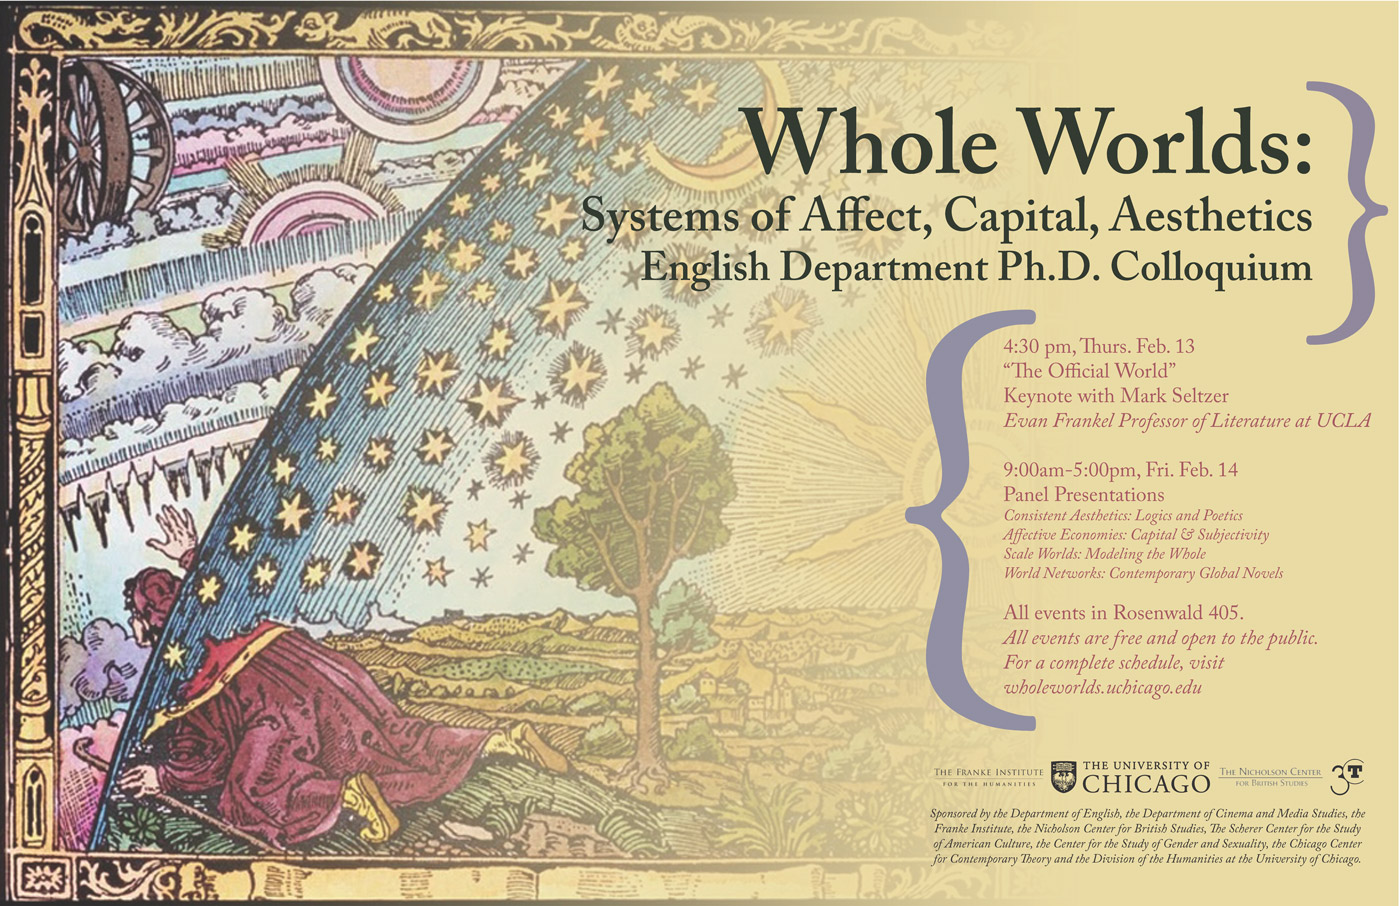 event poster for Whole Worlds conference, system of affect, capital, aesthetics